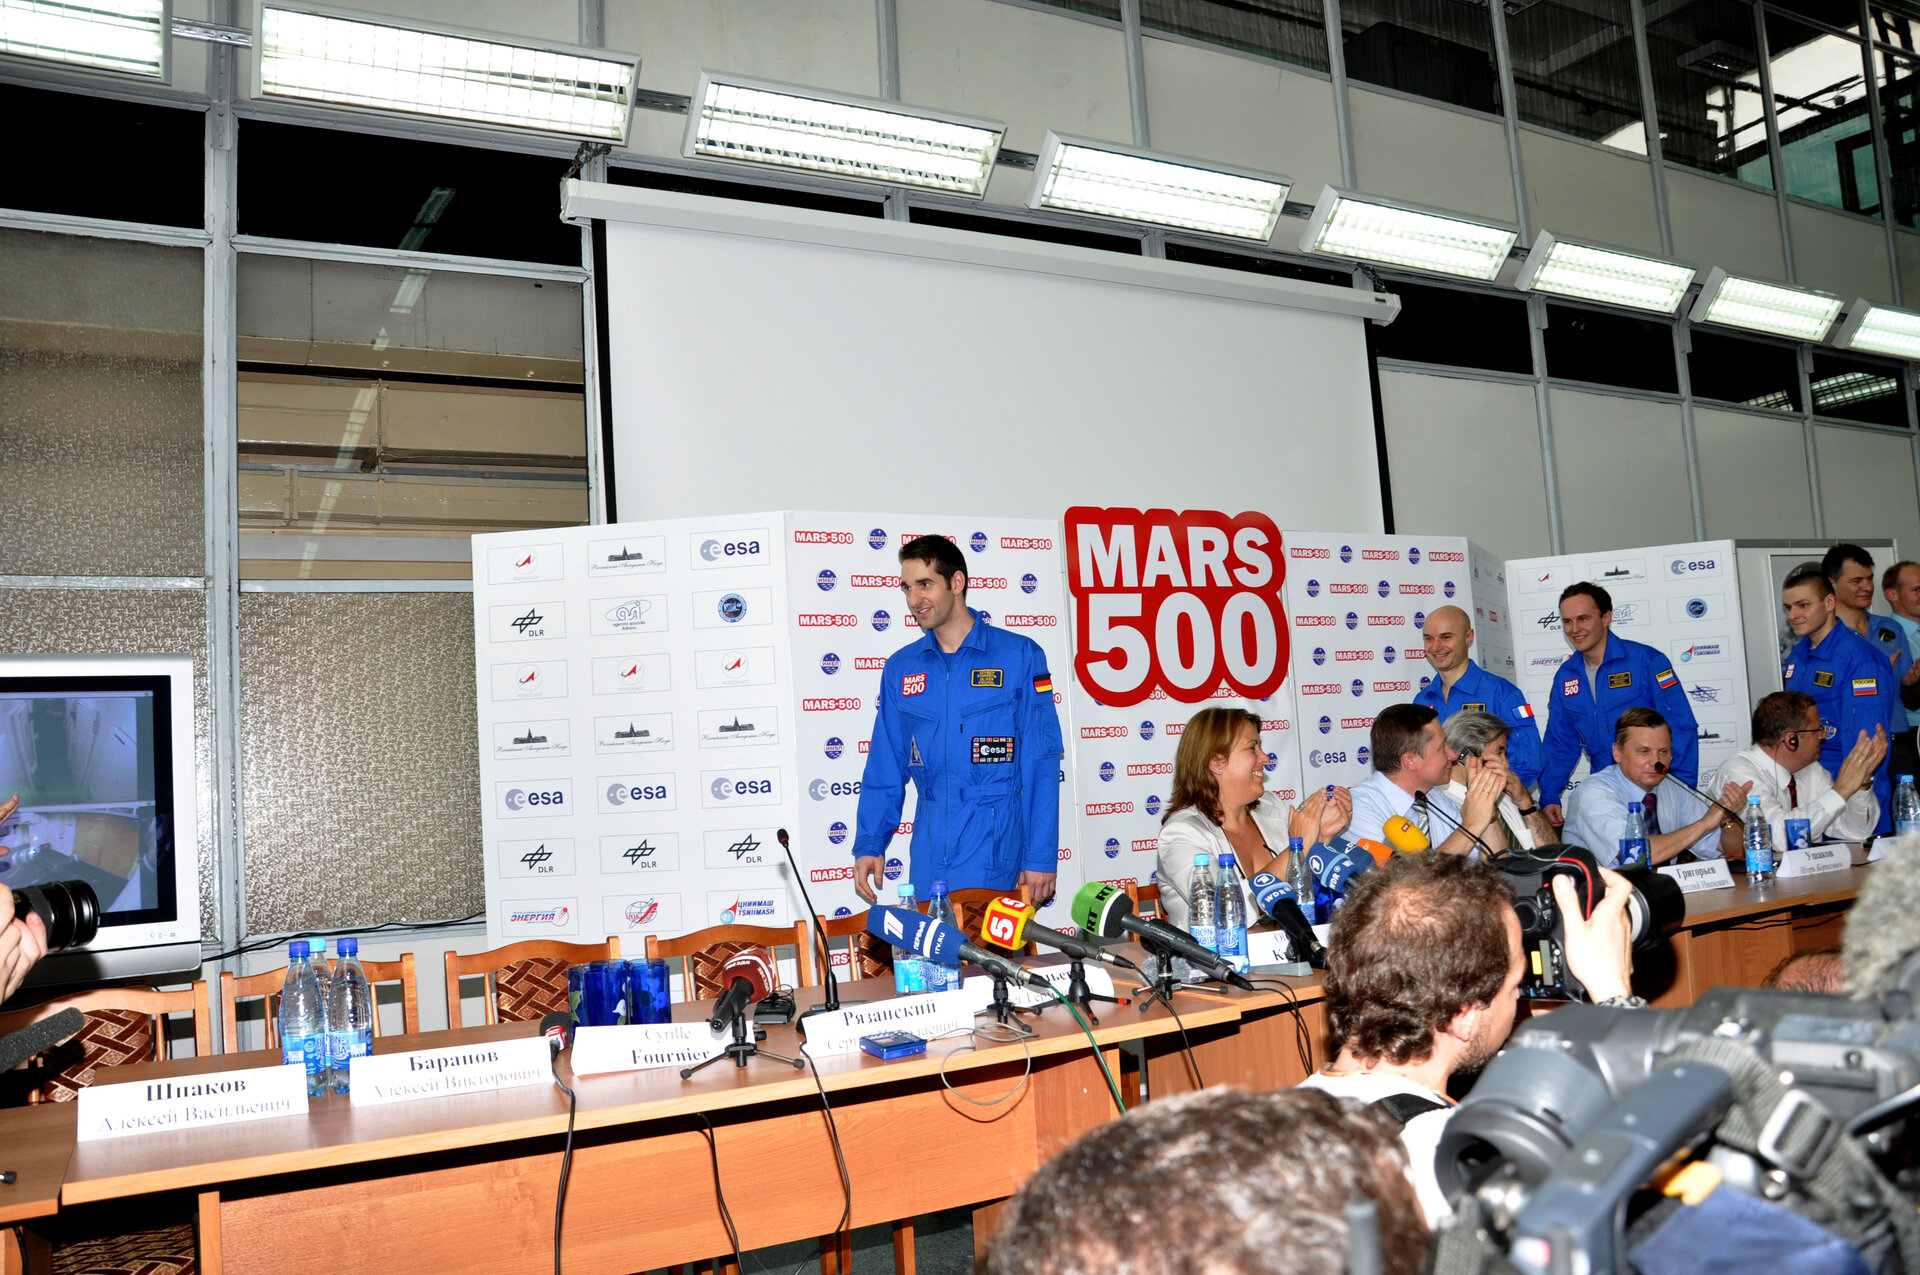 The crew attend a press conference following the completion of their 105-day Mars mission simulation